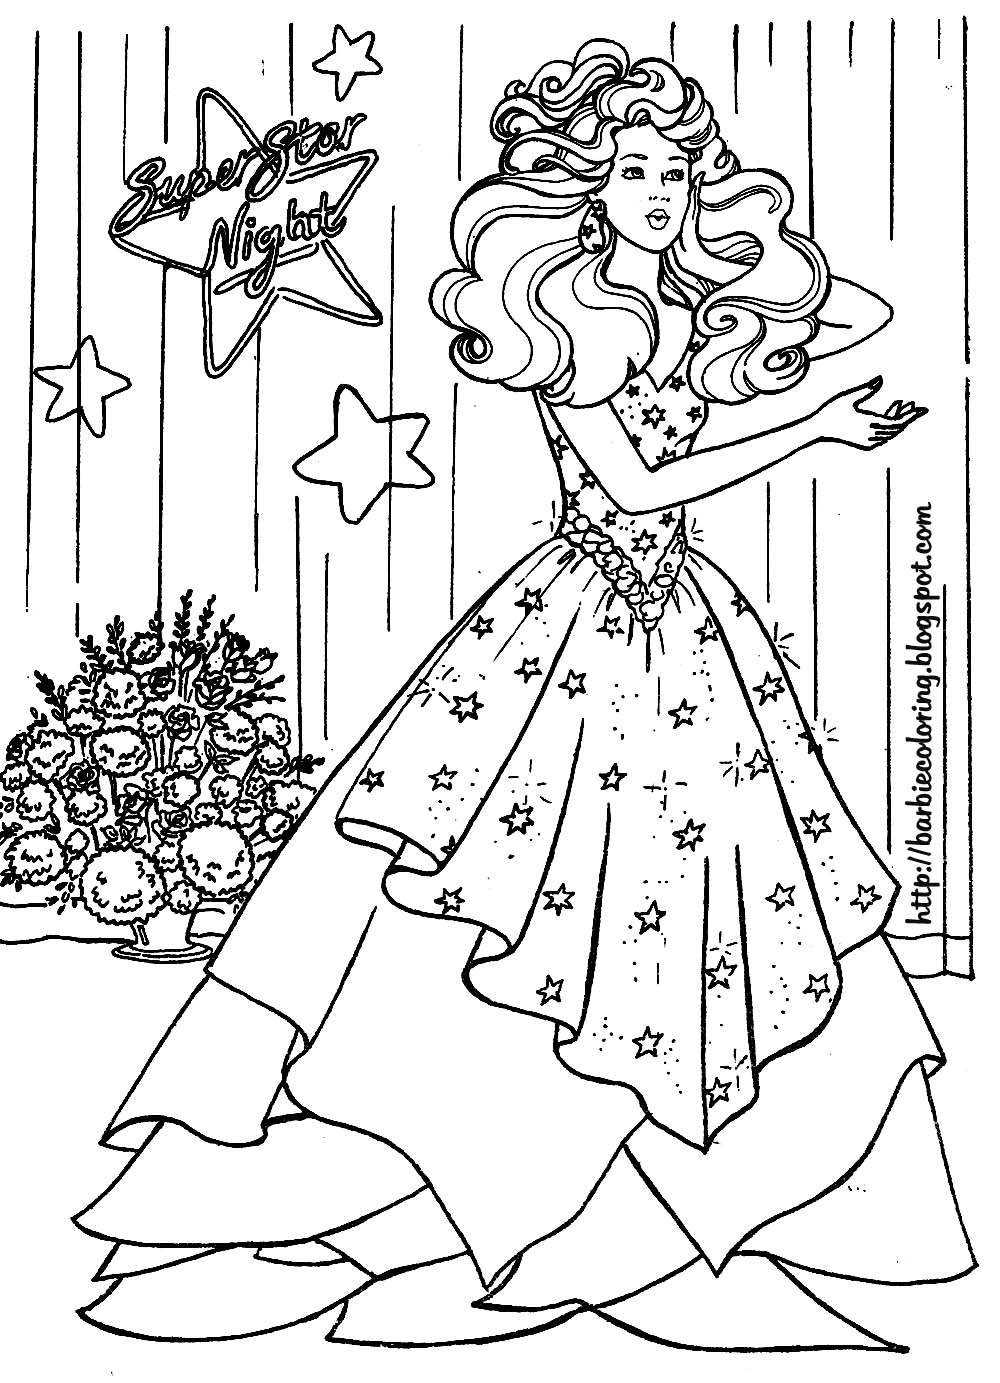 barbie print out coloring pages - barbie coloring pages barbie bride and barbie superstar